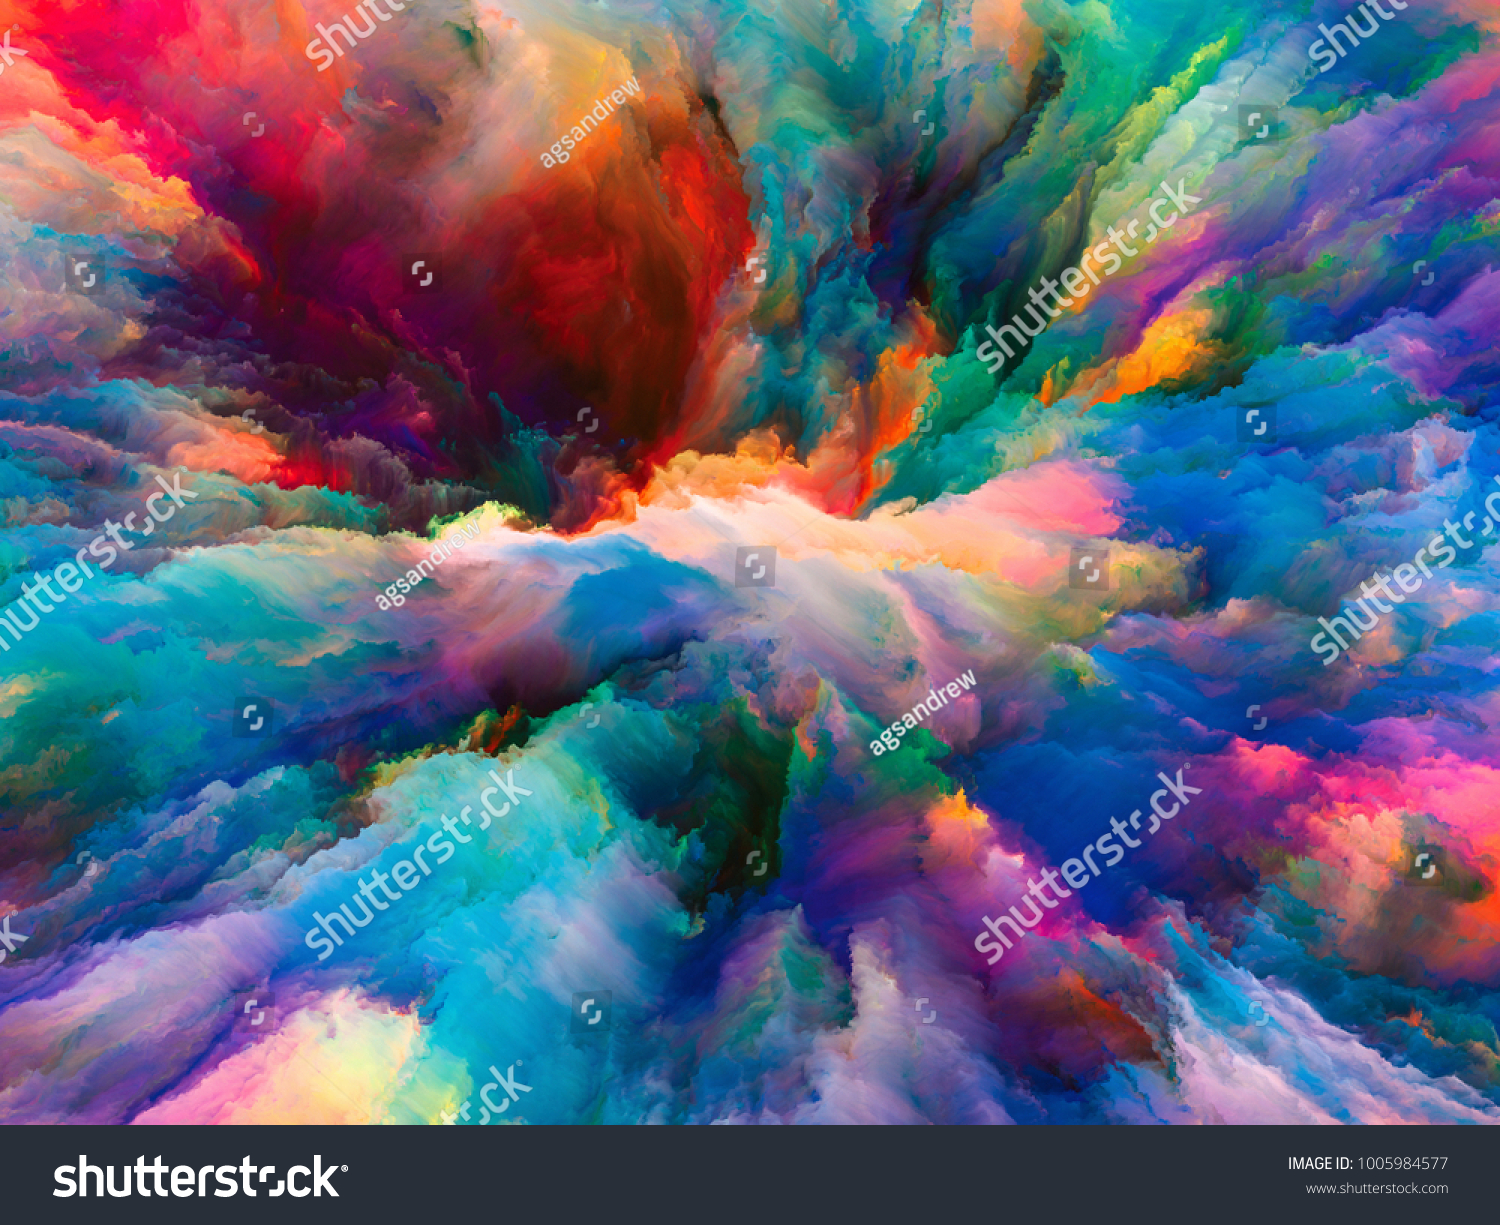 color explosion series design composed of fractal paint and rich